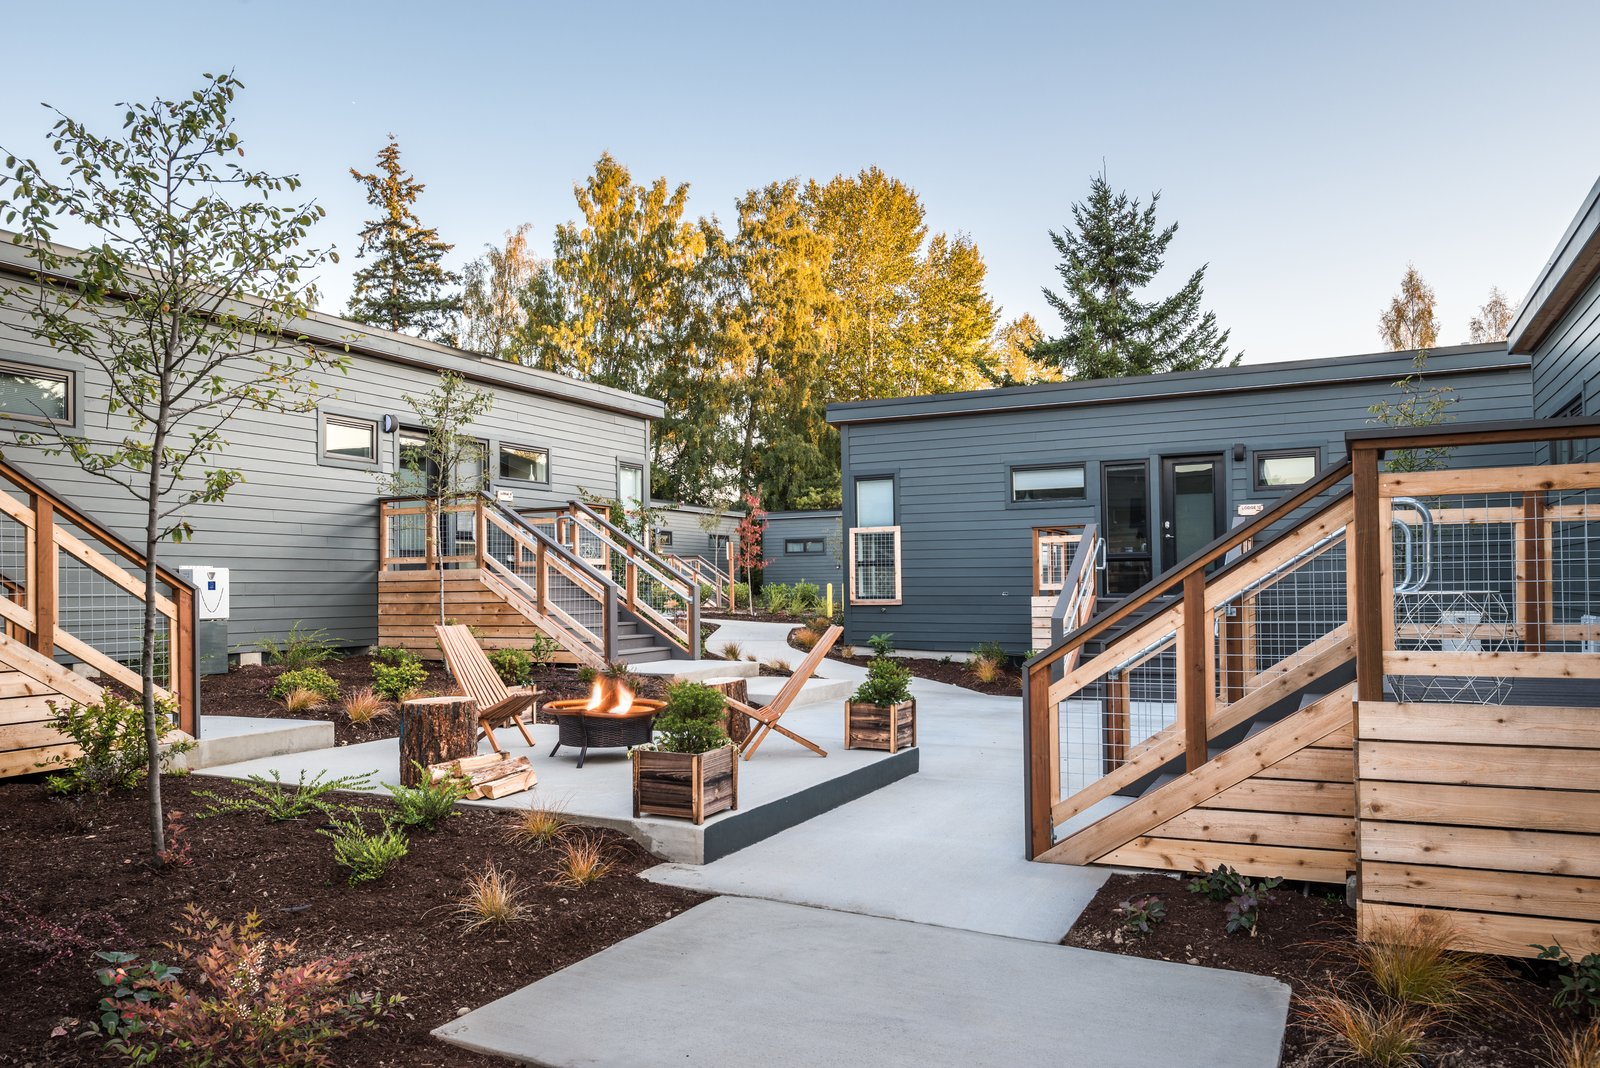 Outdoor, Planters Patio, Porch, Deck, Trees, Back Yard, Concrete Patio, Porch, Deck, Gardens, Walkways, and Raised Planters A shared courtyard with a firepit.  Photo 1 of 7 in Serenity Awaits at These Prefab Cabin Rentals on Vashon Island